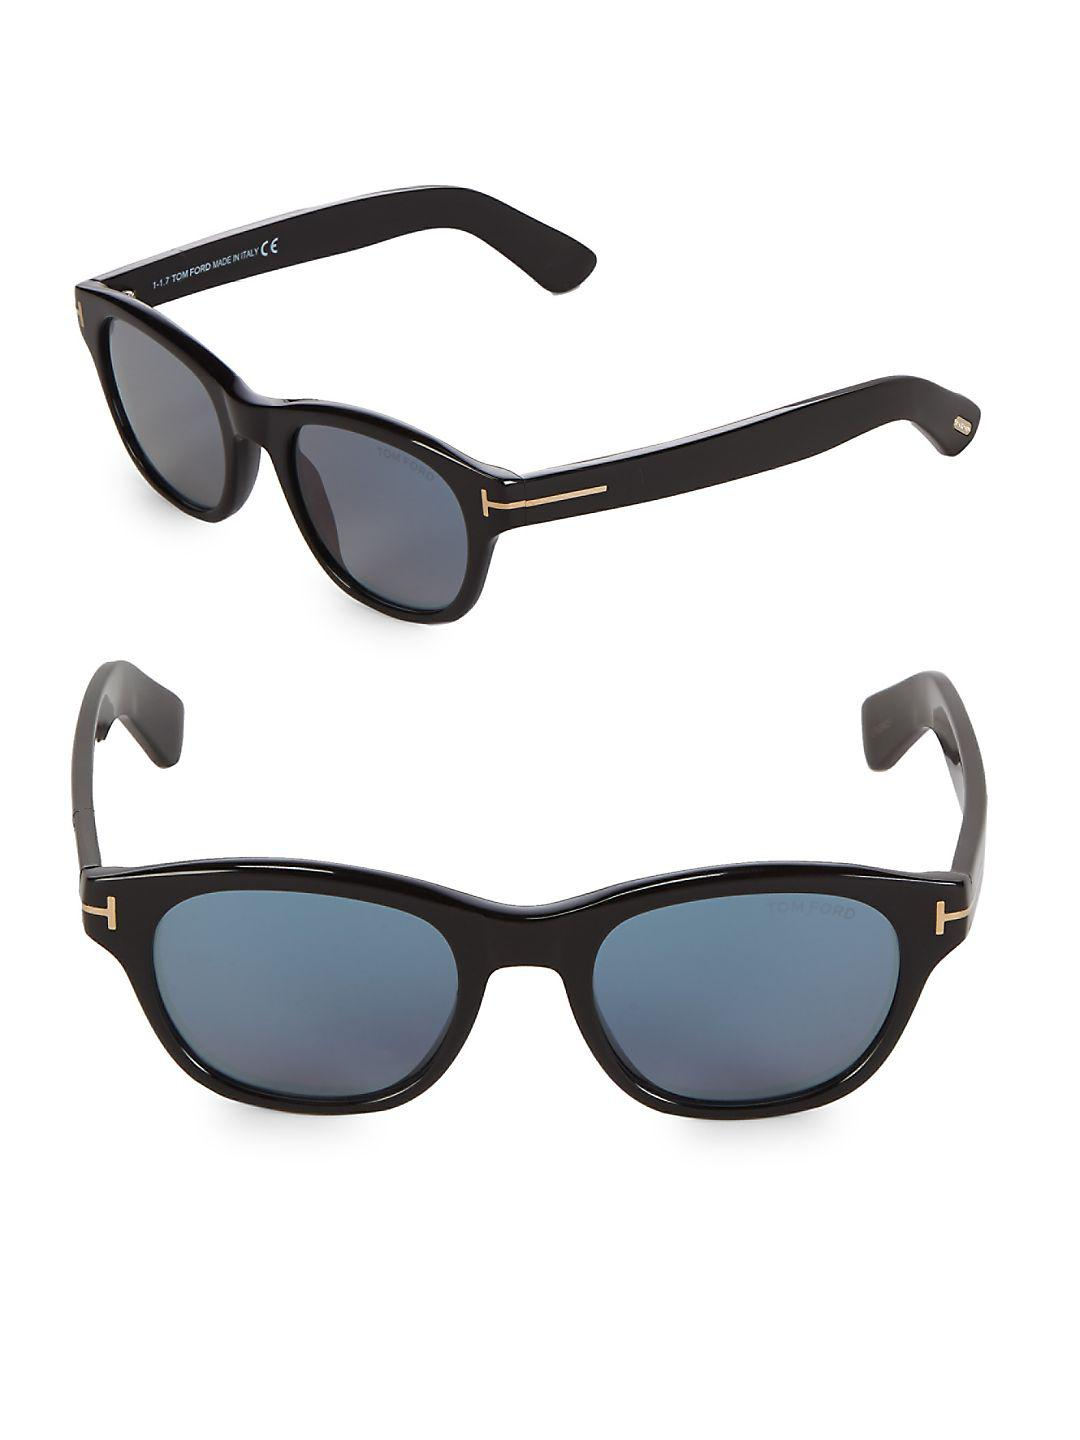 Tom Ford 51mm Square Sunglasses in Black